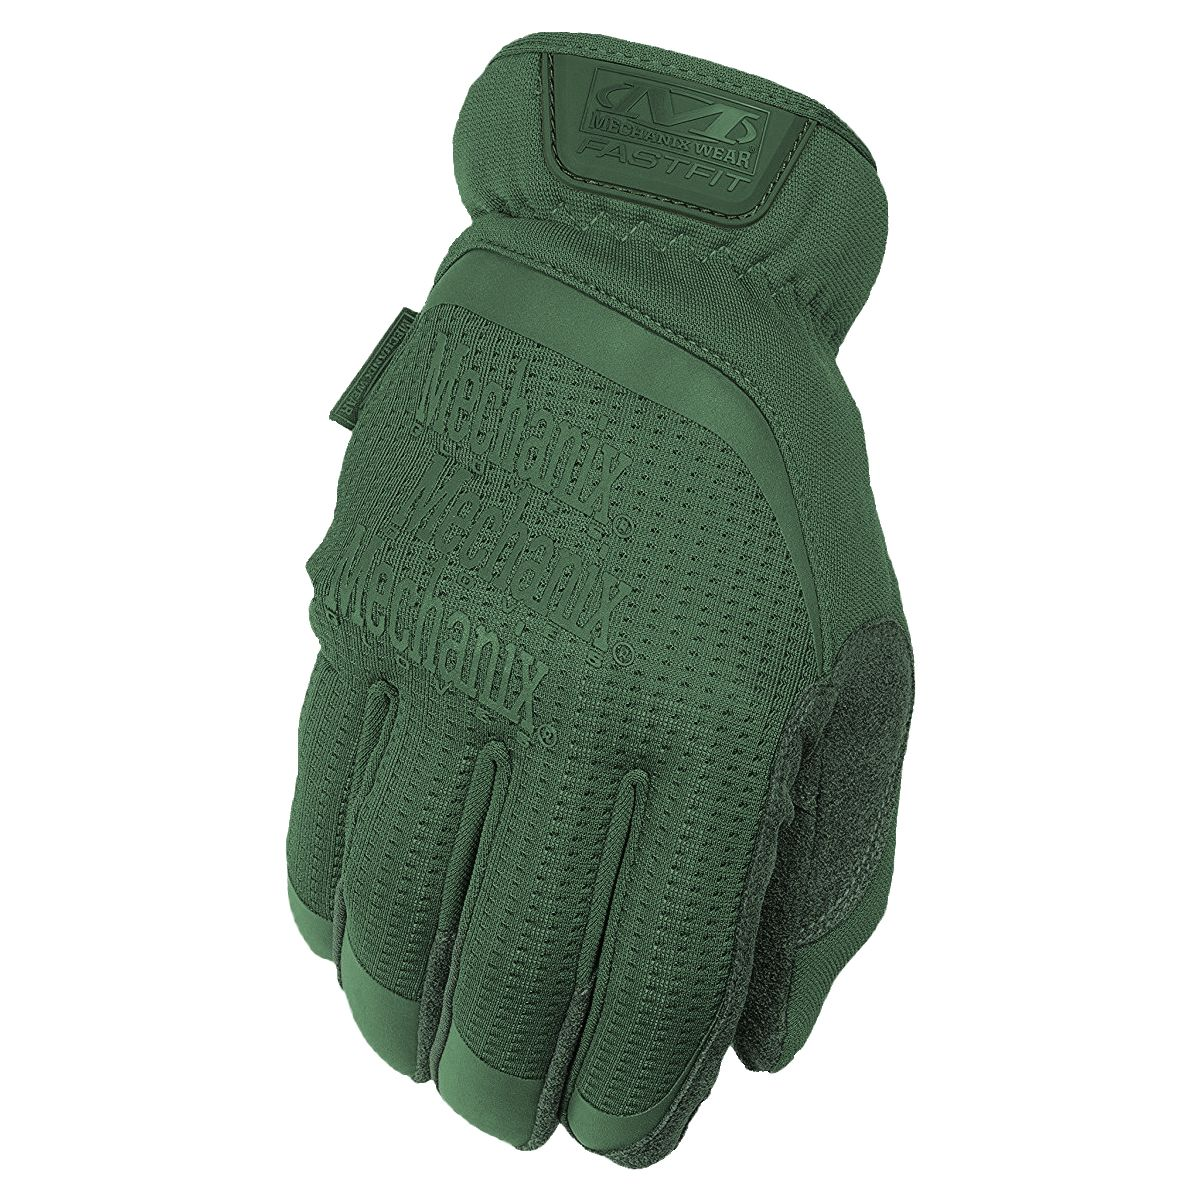 Mechanix Wear Fastfit Olive Drab